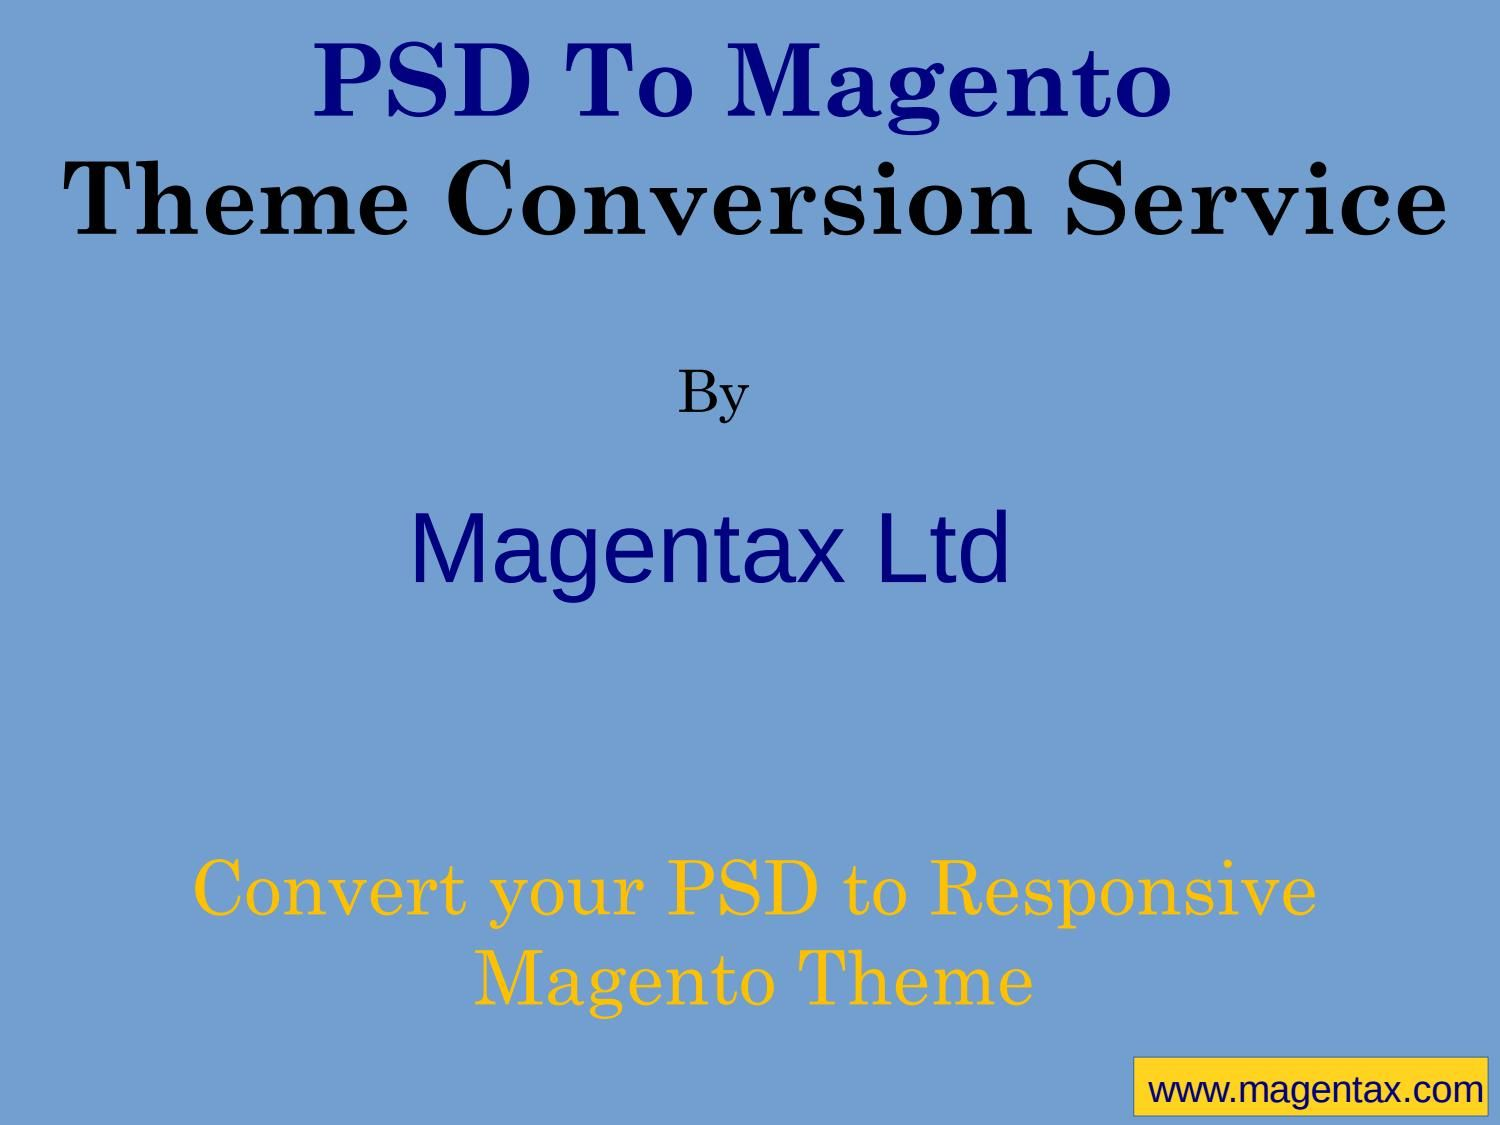 PSD To Magento Theme Conversion Service By Magentax Ltd | Pinterest